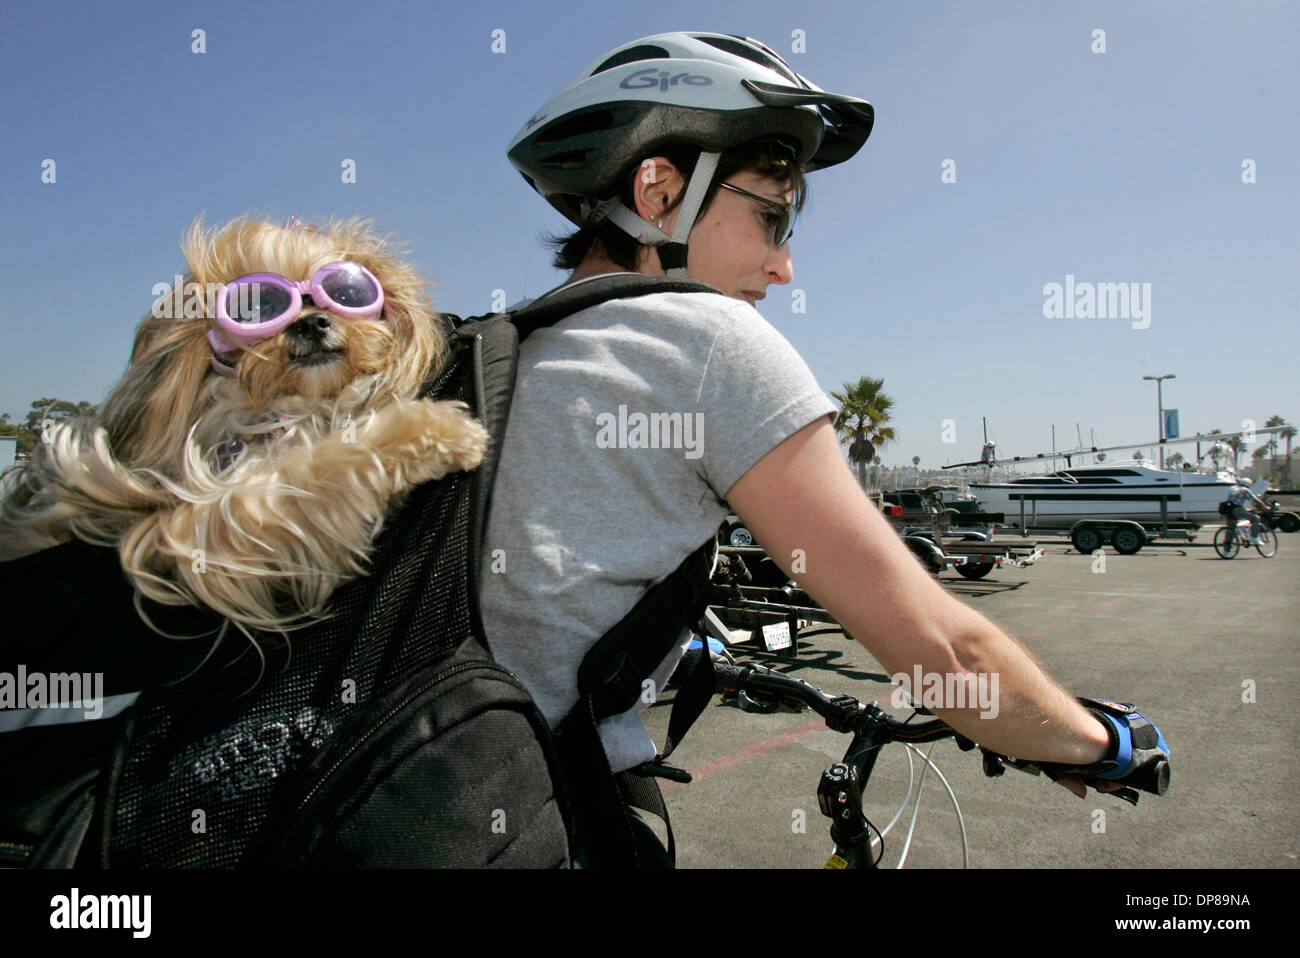 (Published 9/22/2006, NC-1, NI-1) September 20, 2006, Oceanside, California_Oceanside resident ANN WATTS has her small dog named Shanti, that's wearing sunglasses, in her backpack as she takes a bike ride along the water at the Oceanside Harbor. The dog is a Yorki/Shih tzu  mix and seems to be enjoying itself_photo by Charlie Neuman/San Diego Union-Tribune/Zuma Press. copyright 200 - Stock Image